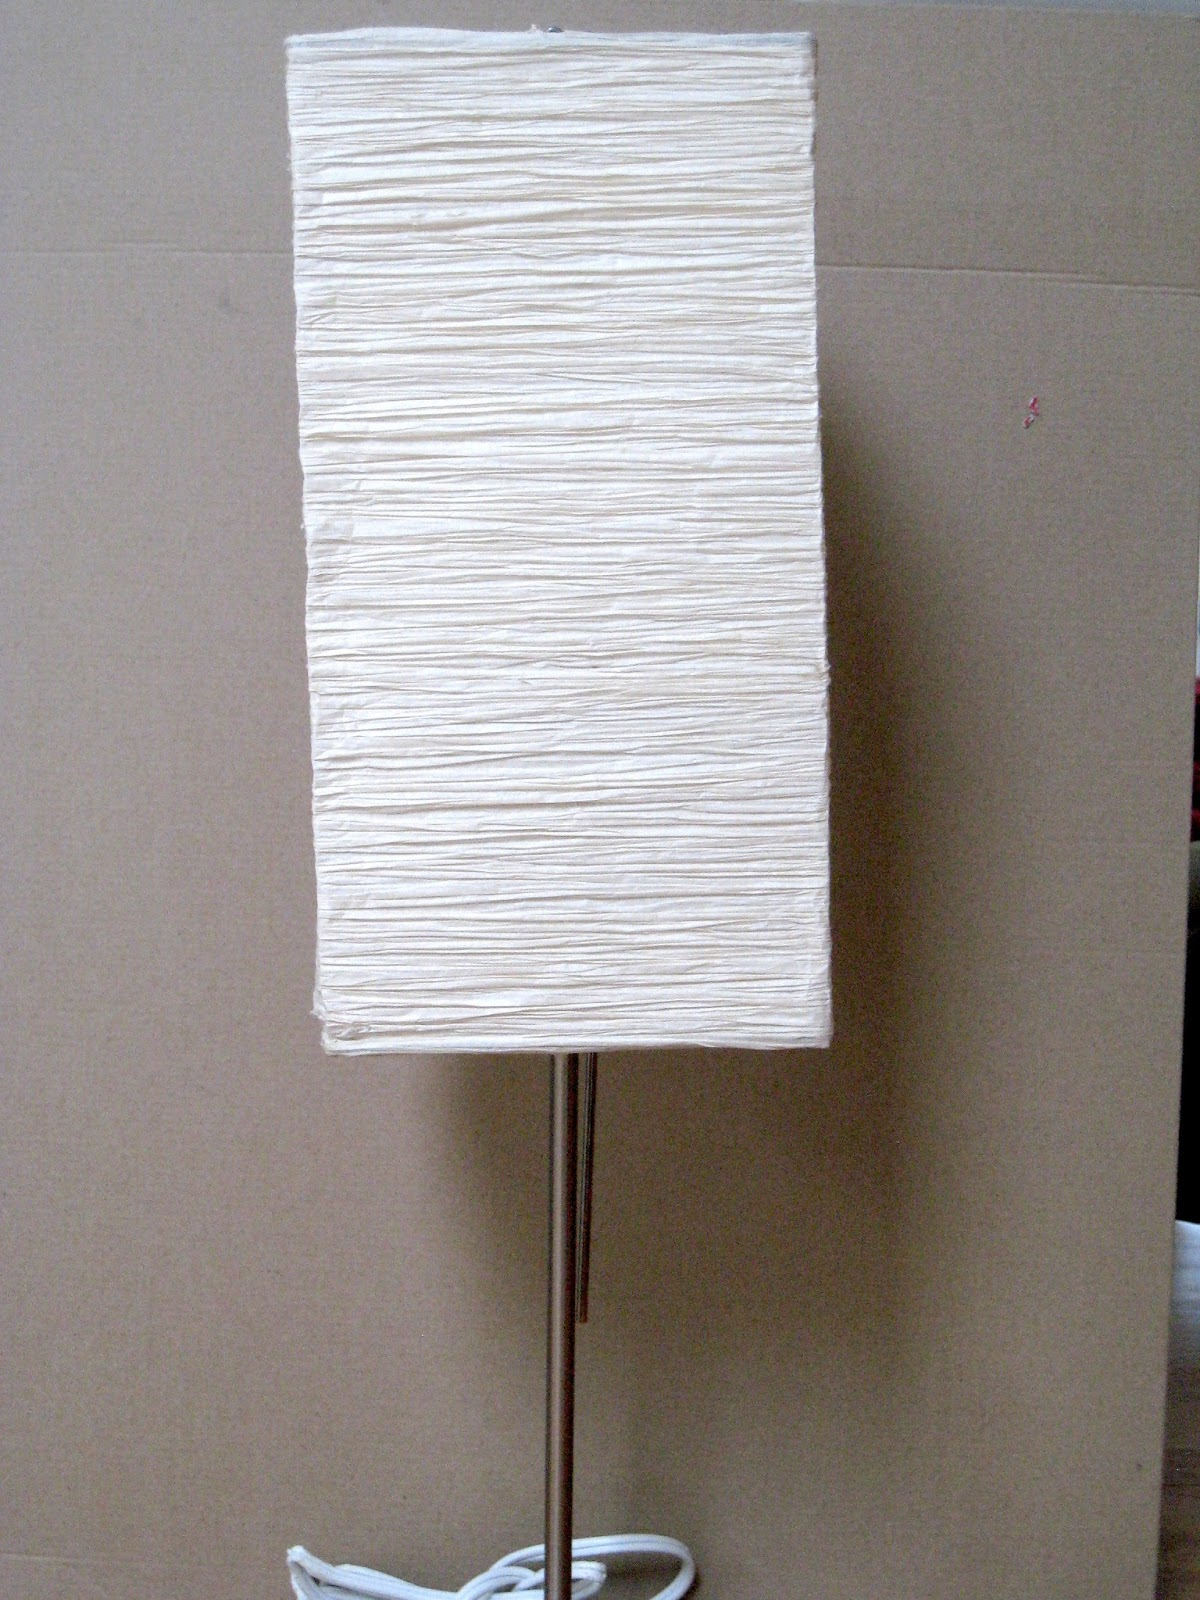 Rhody life diy ikea orgel lamp shades part 1 diy ikea orgel lamp shades part 1 aloadofball Image collections